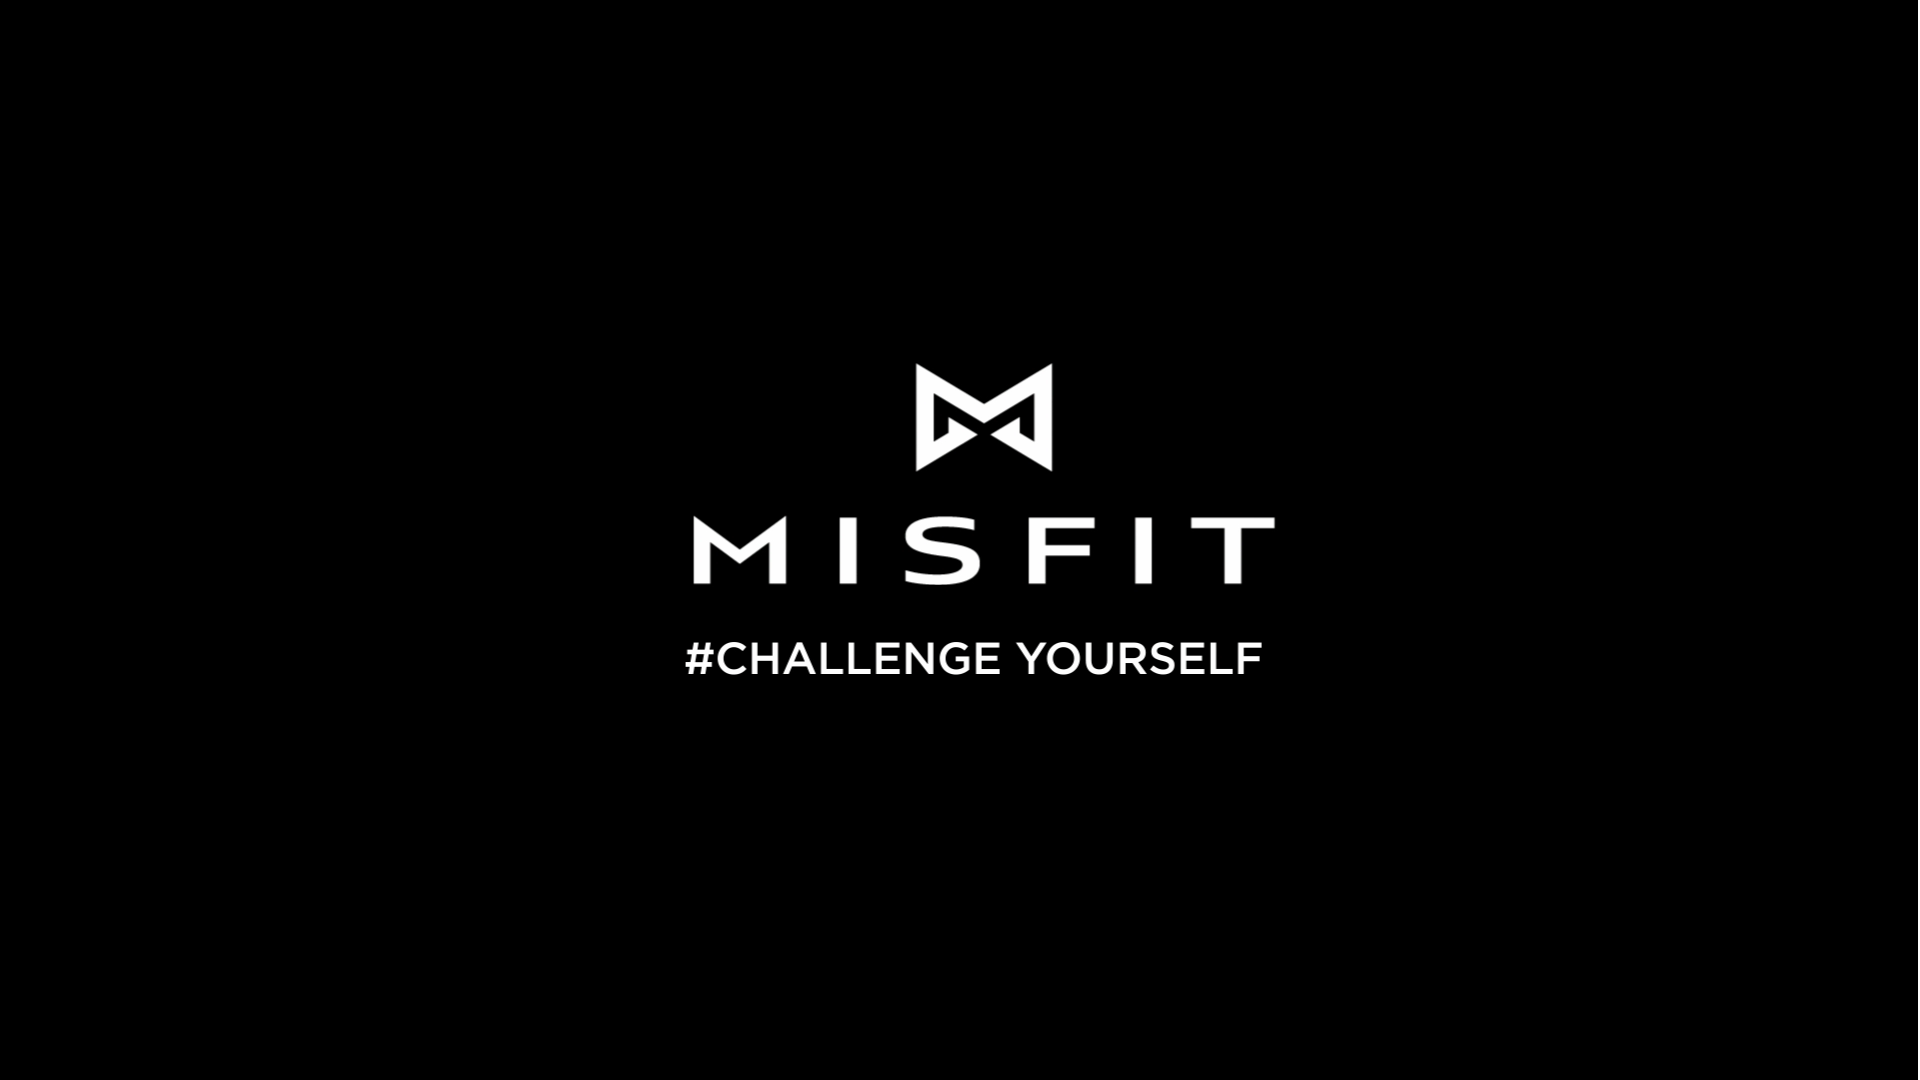 Misfit_LIfestyle_126_NoSlate_1920x1080 (02997).png